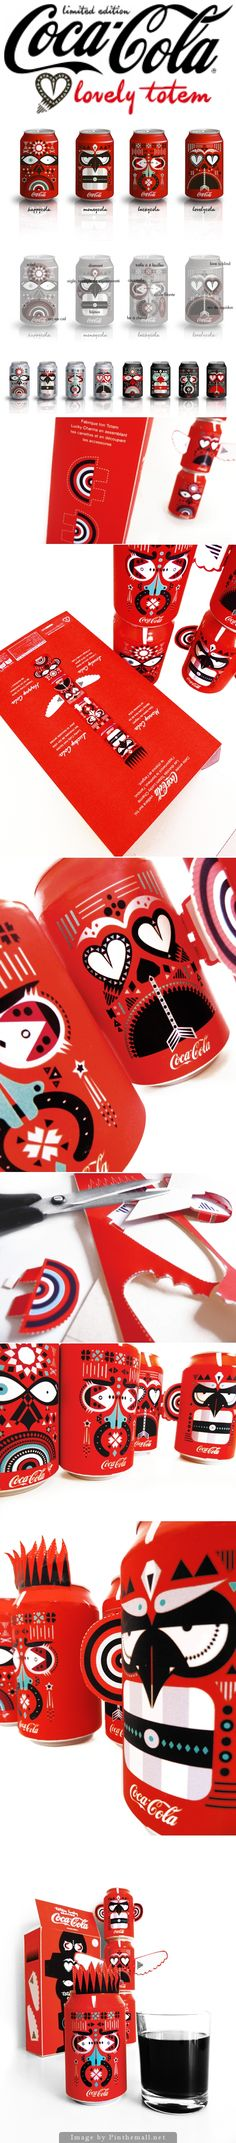 How fun is this limited edition Totem #Coca-Cola concept #packaging by Delphine Marie Grosset curated by Packaging Diva PD created via http://www.delphinemariegrosset.com/graphisme/totem-coca-cola